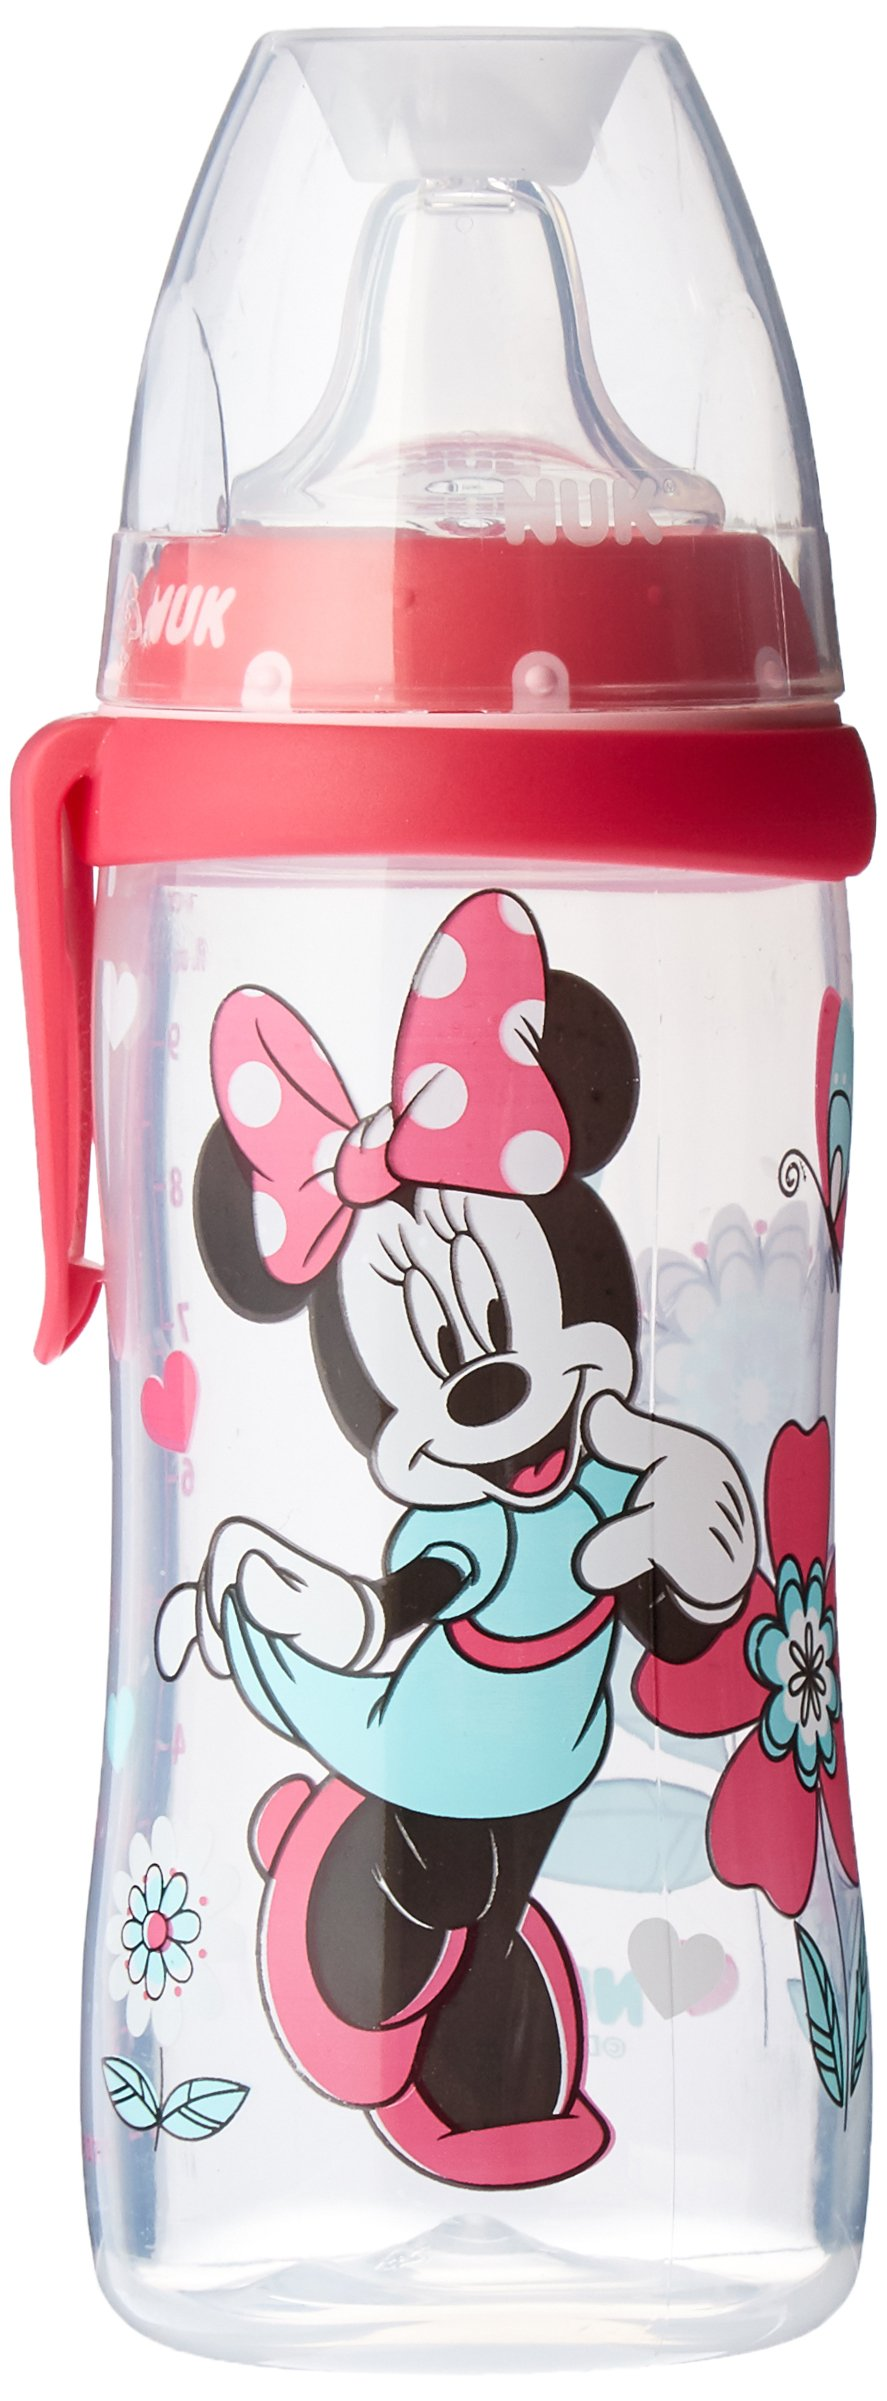 NUK Disney Active Cup, Minnie Mouse Design, 10 Ounce